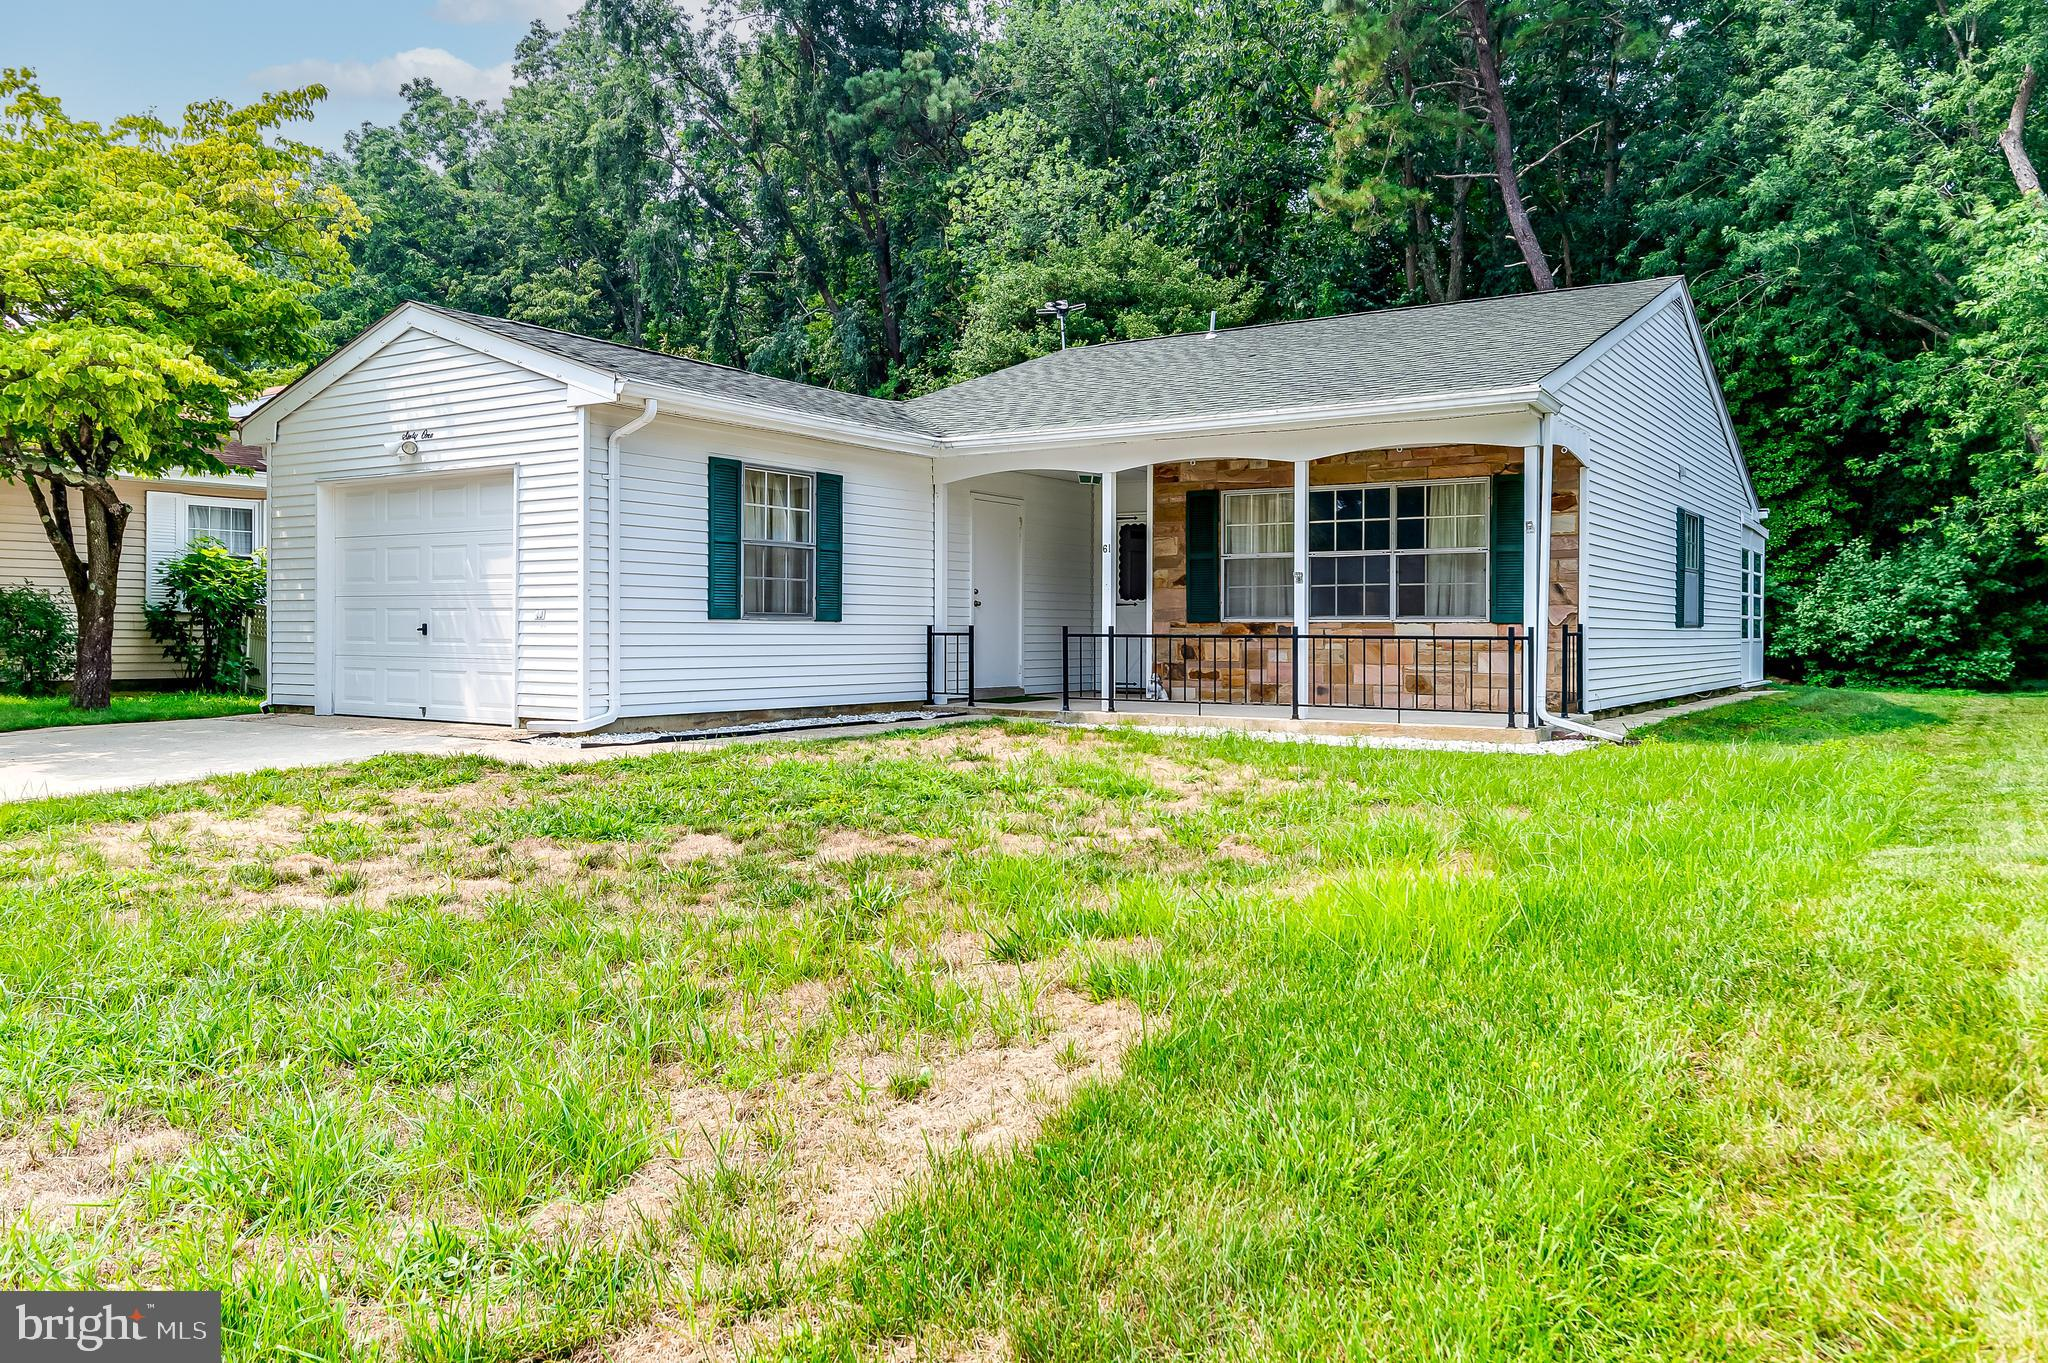 Welcome to this popular Gladwyne Model. 2 Bedroom, 1 1/2 Bathroom with Sun room. Enter covered front porch to protected access to garage. Kitchen has newer cabinets, backsplash, counter tops, appliances, and water line to refrigerator. Walk thru dining area to Sun room. The back yard is private lined with trees and has a large patio.  Back inside, the main bathroom has been upgraded with walk in  shower. Half bath has new vanity and medicine cabinet. Ceiling fans in dining area, bedrooms and sun room.  The Settlers club house is in walking distance as is the pool and exercise room. Leisuretowne has many amenities for your active life style. 2 pools, clubhouses with libraries and meeting rooms. Lakes, tennis courts, putting green, driving range, bocce, shuffle board, bus transportation, clubs and exercise/weight room. 24/7 security. Seller to provide at closing a HSA one year Home Warranty for your peace of mind. Any HOA notations will be the responsibility of the Buyer.